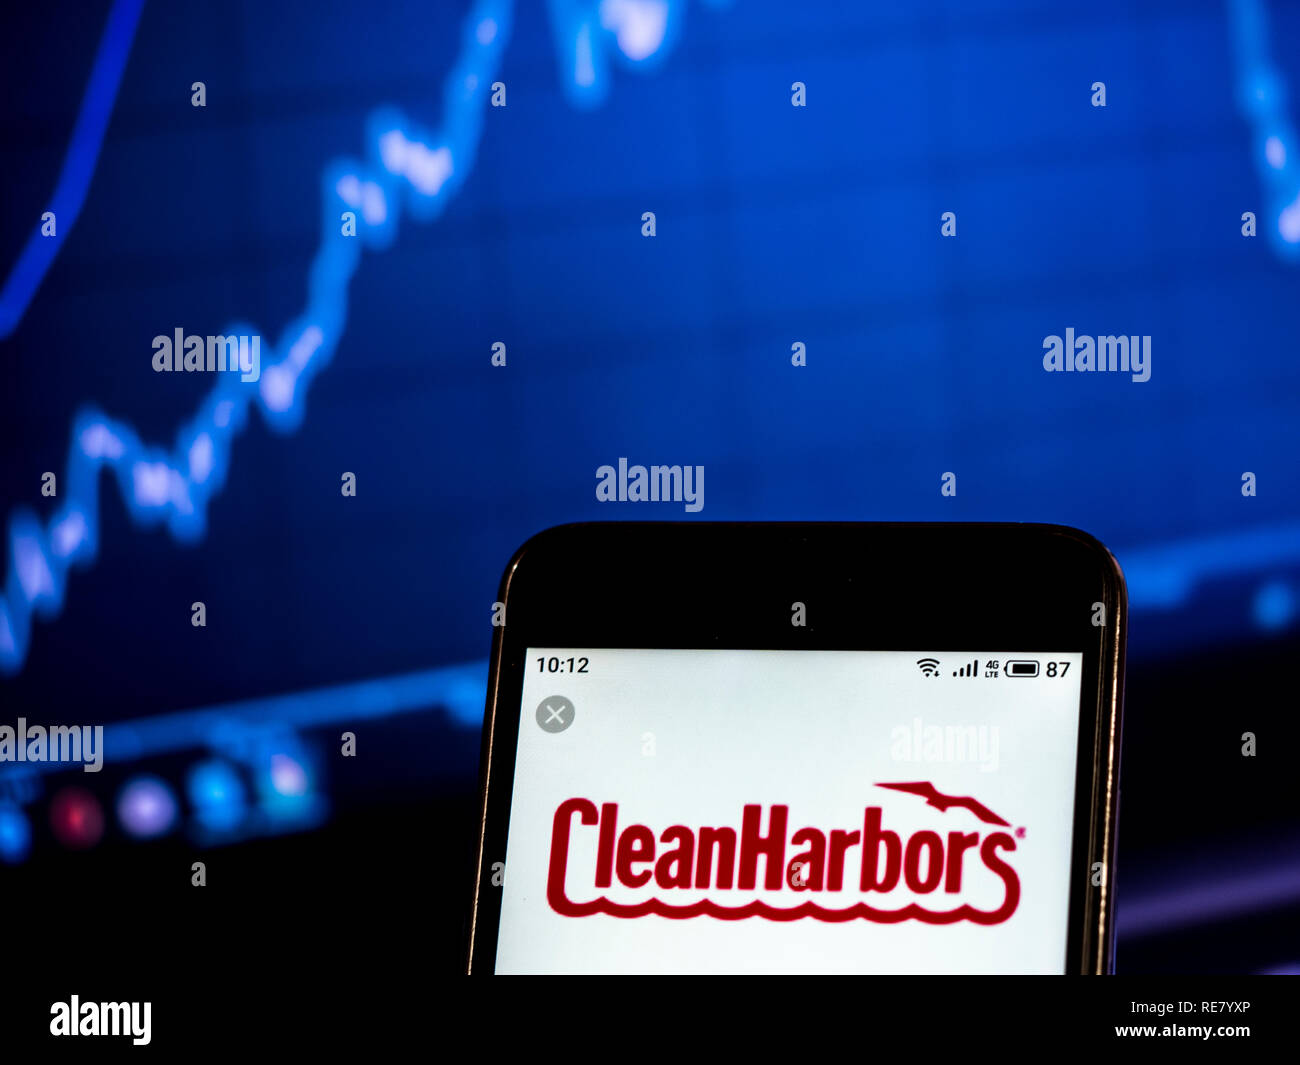 Clean Harbors Waste management company logo seen displayed